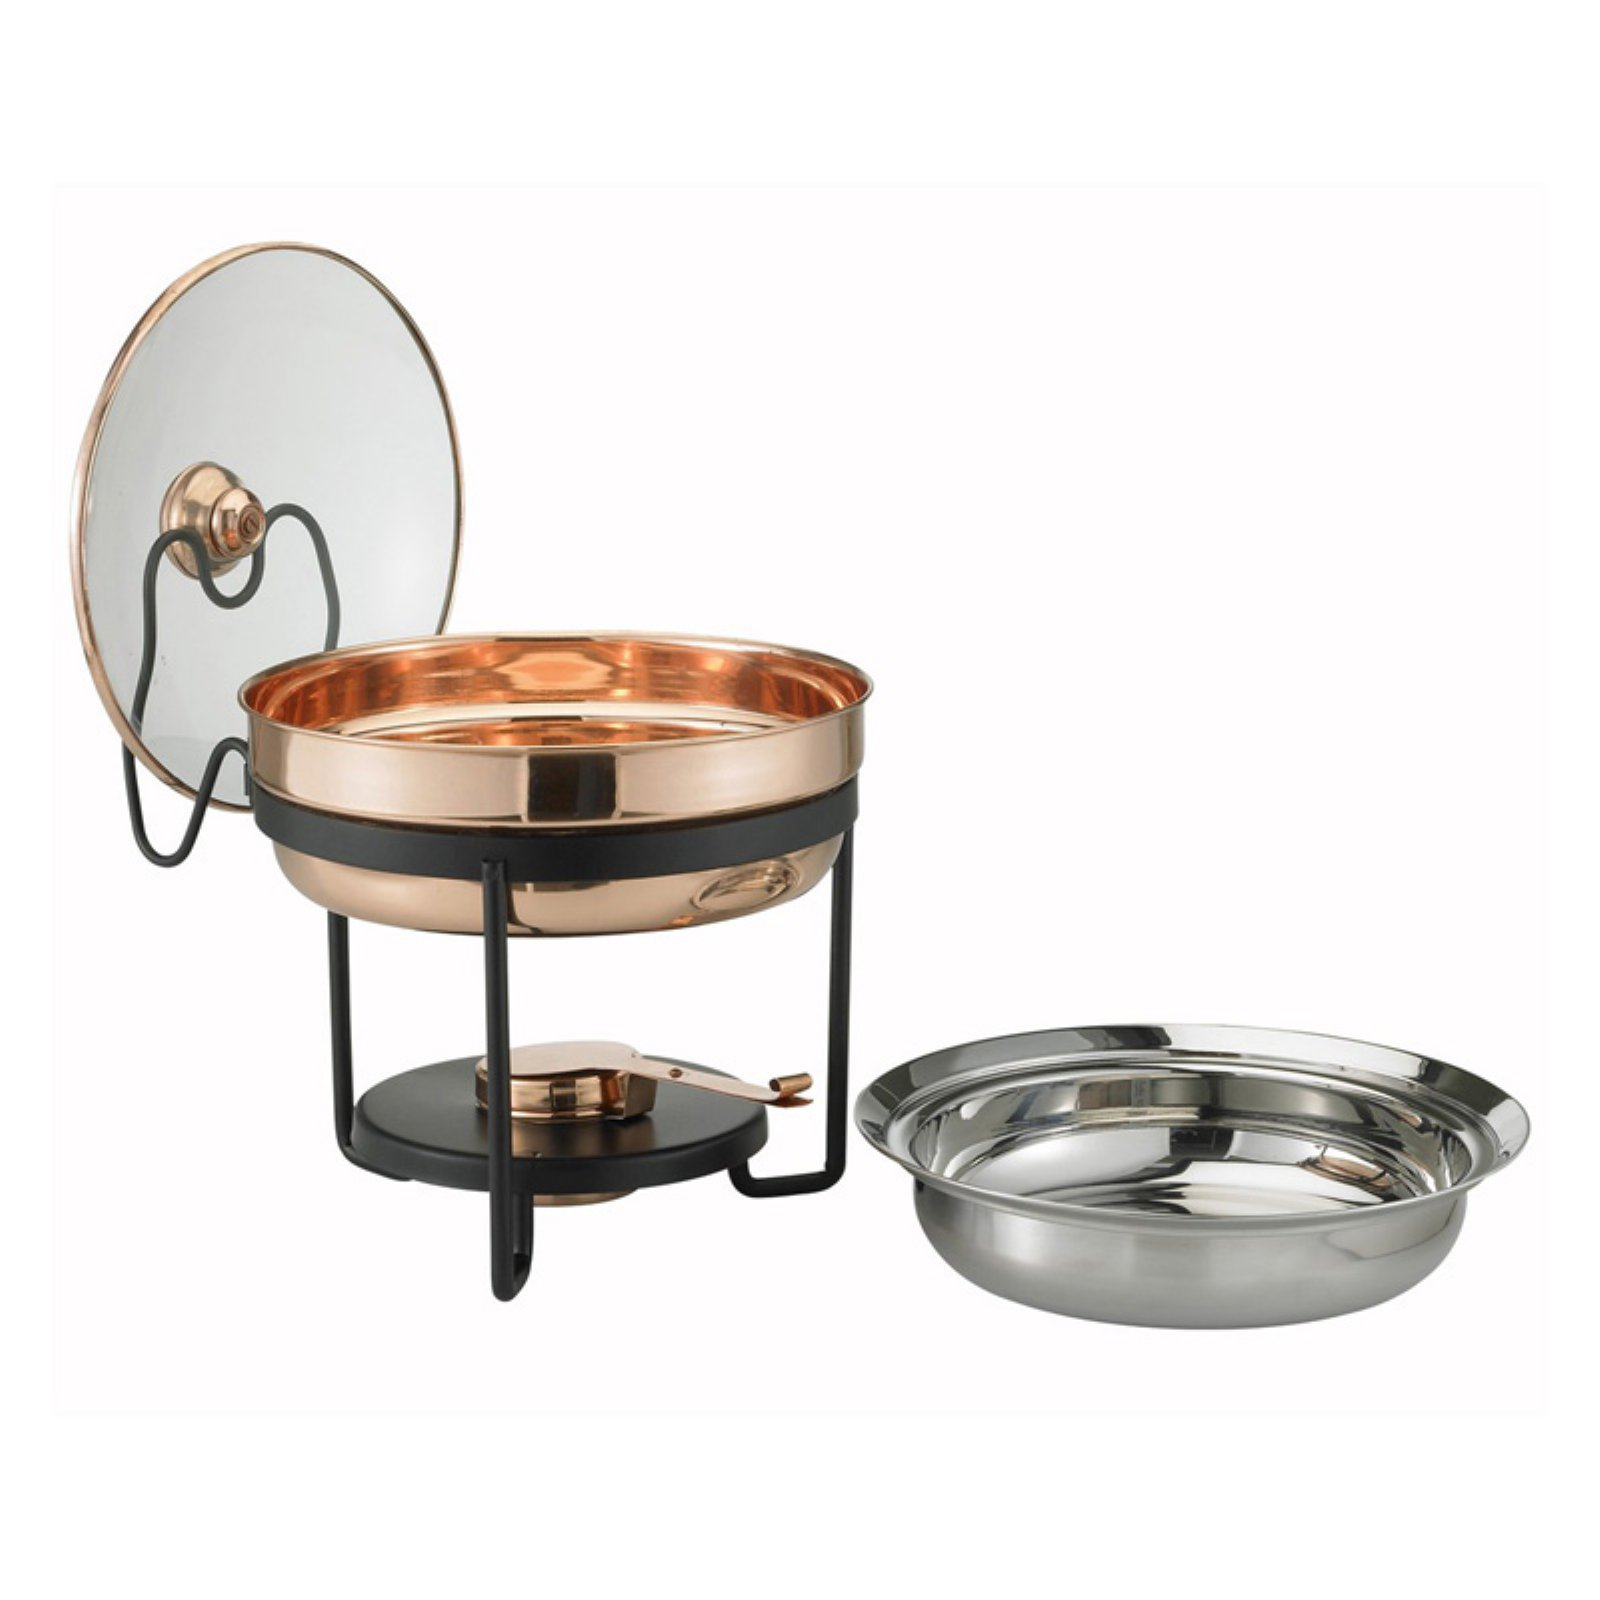 Old Dutch 970 Decor Copper Chafing Dish with Glass Lid